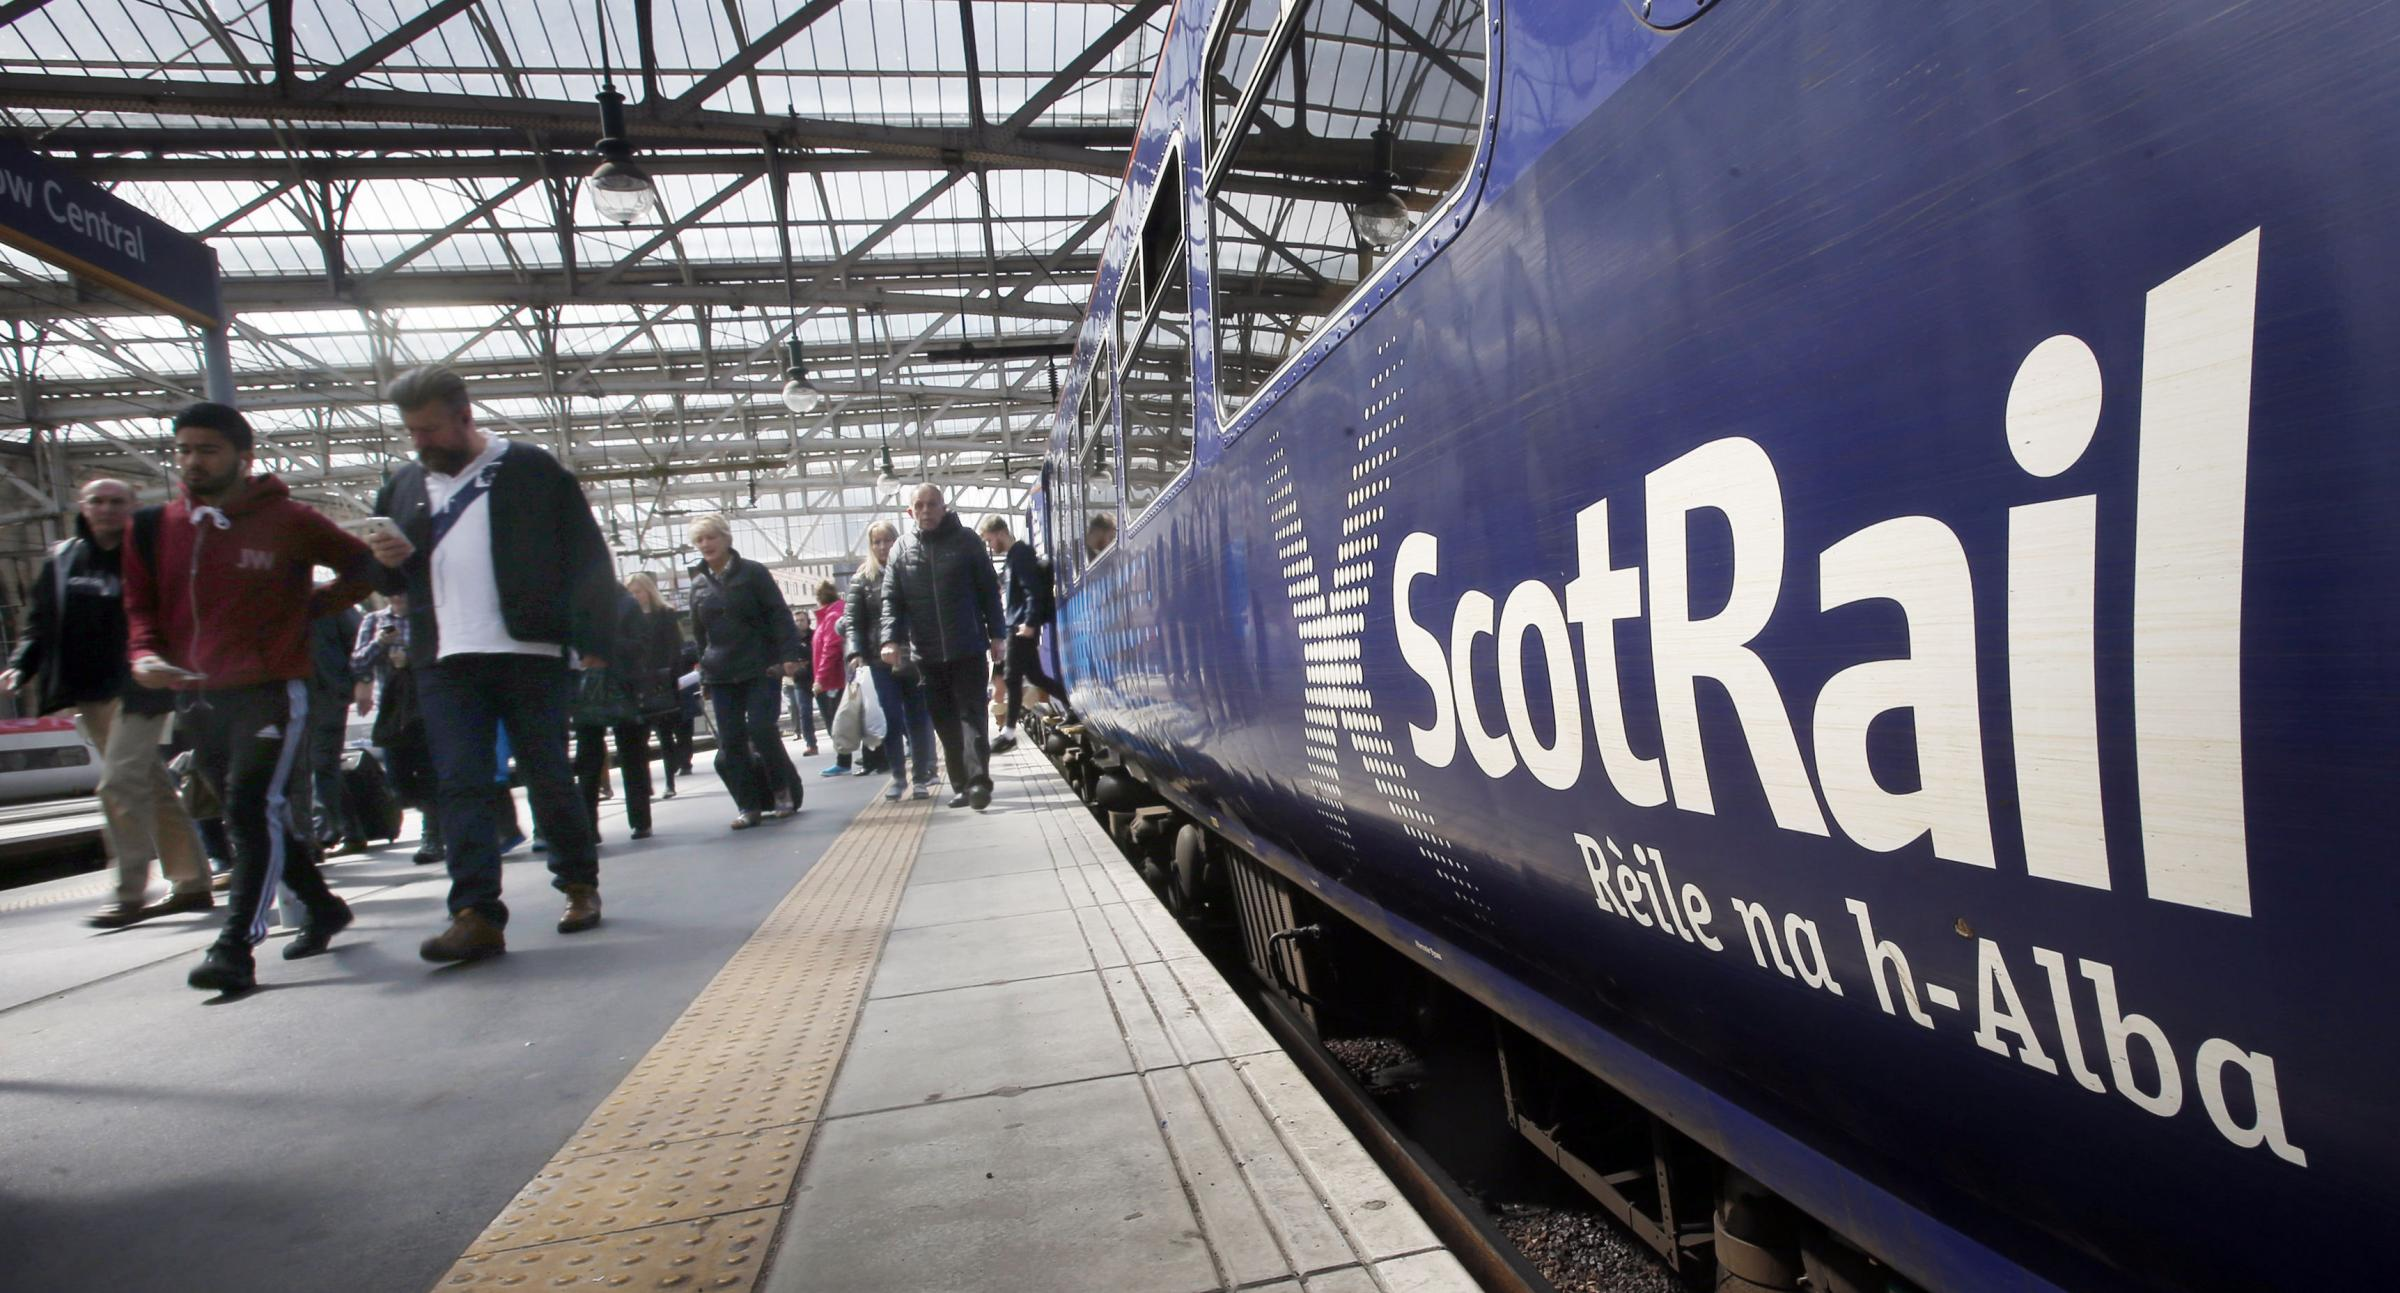 Scotrail has been heavily criticised after days of delays